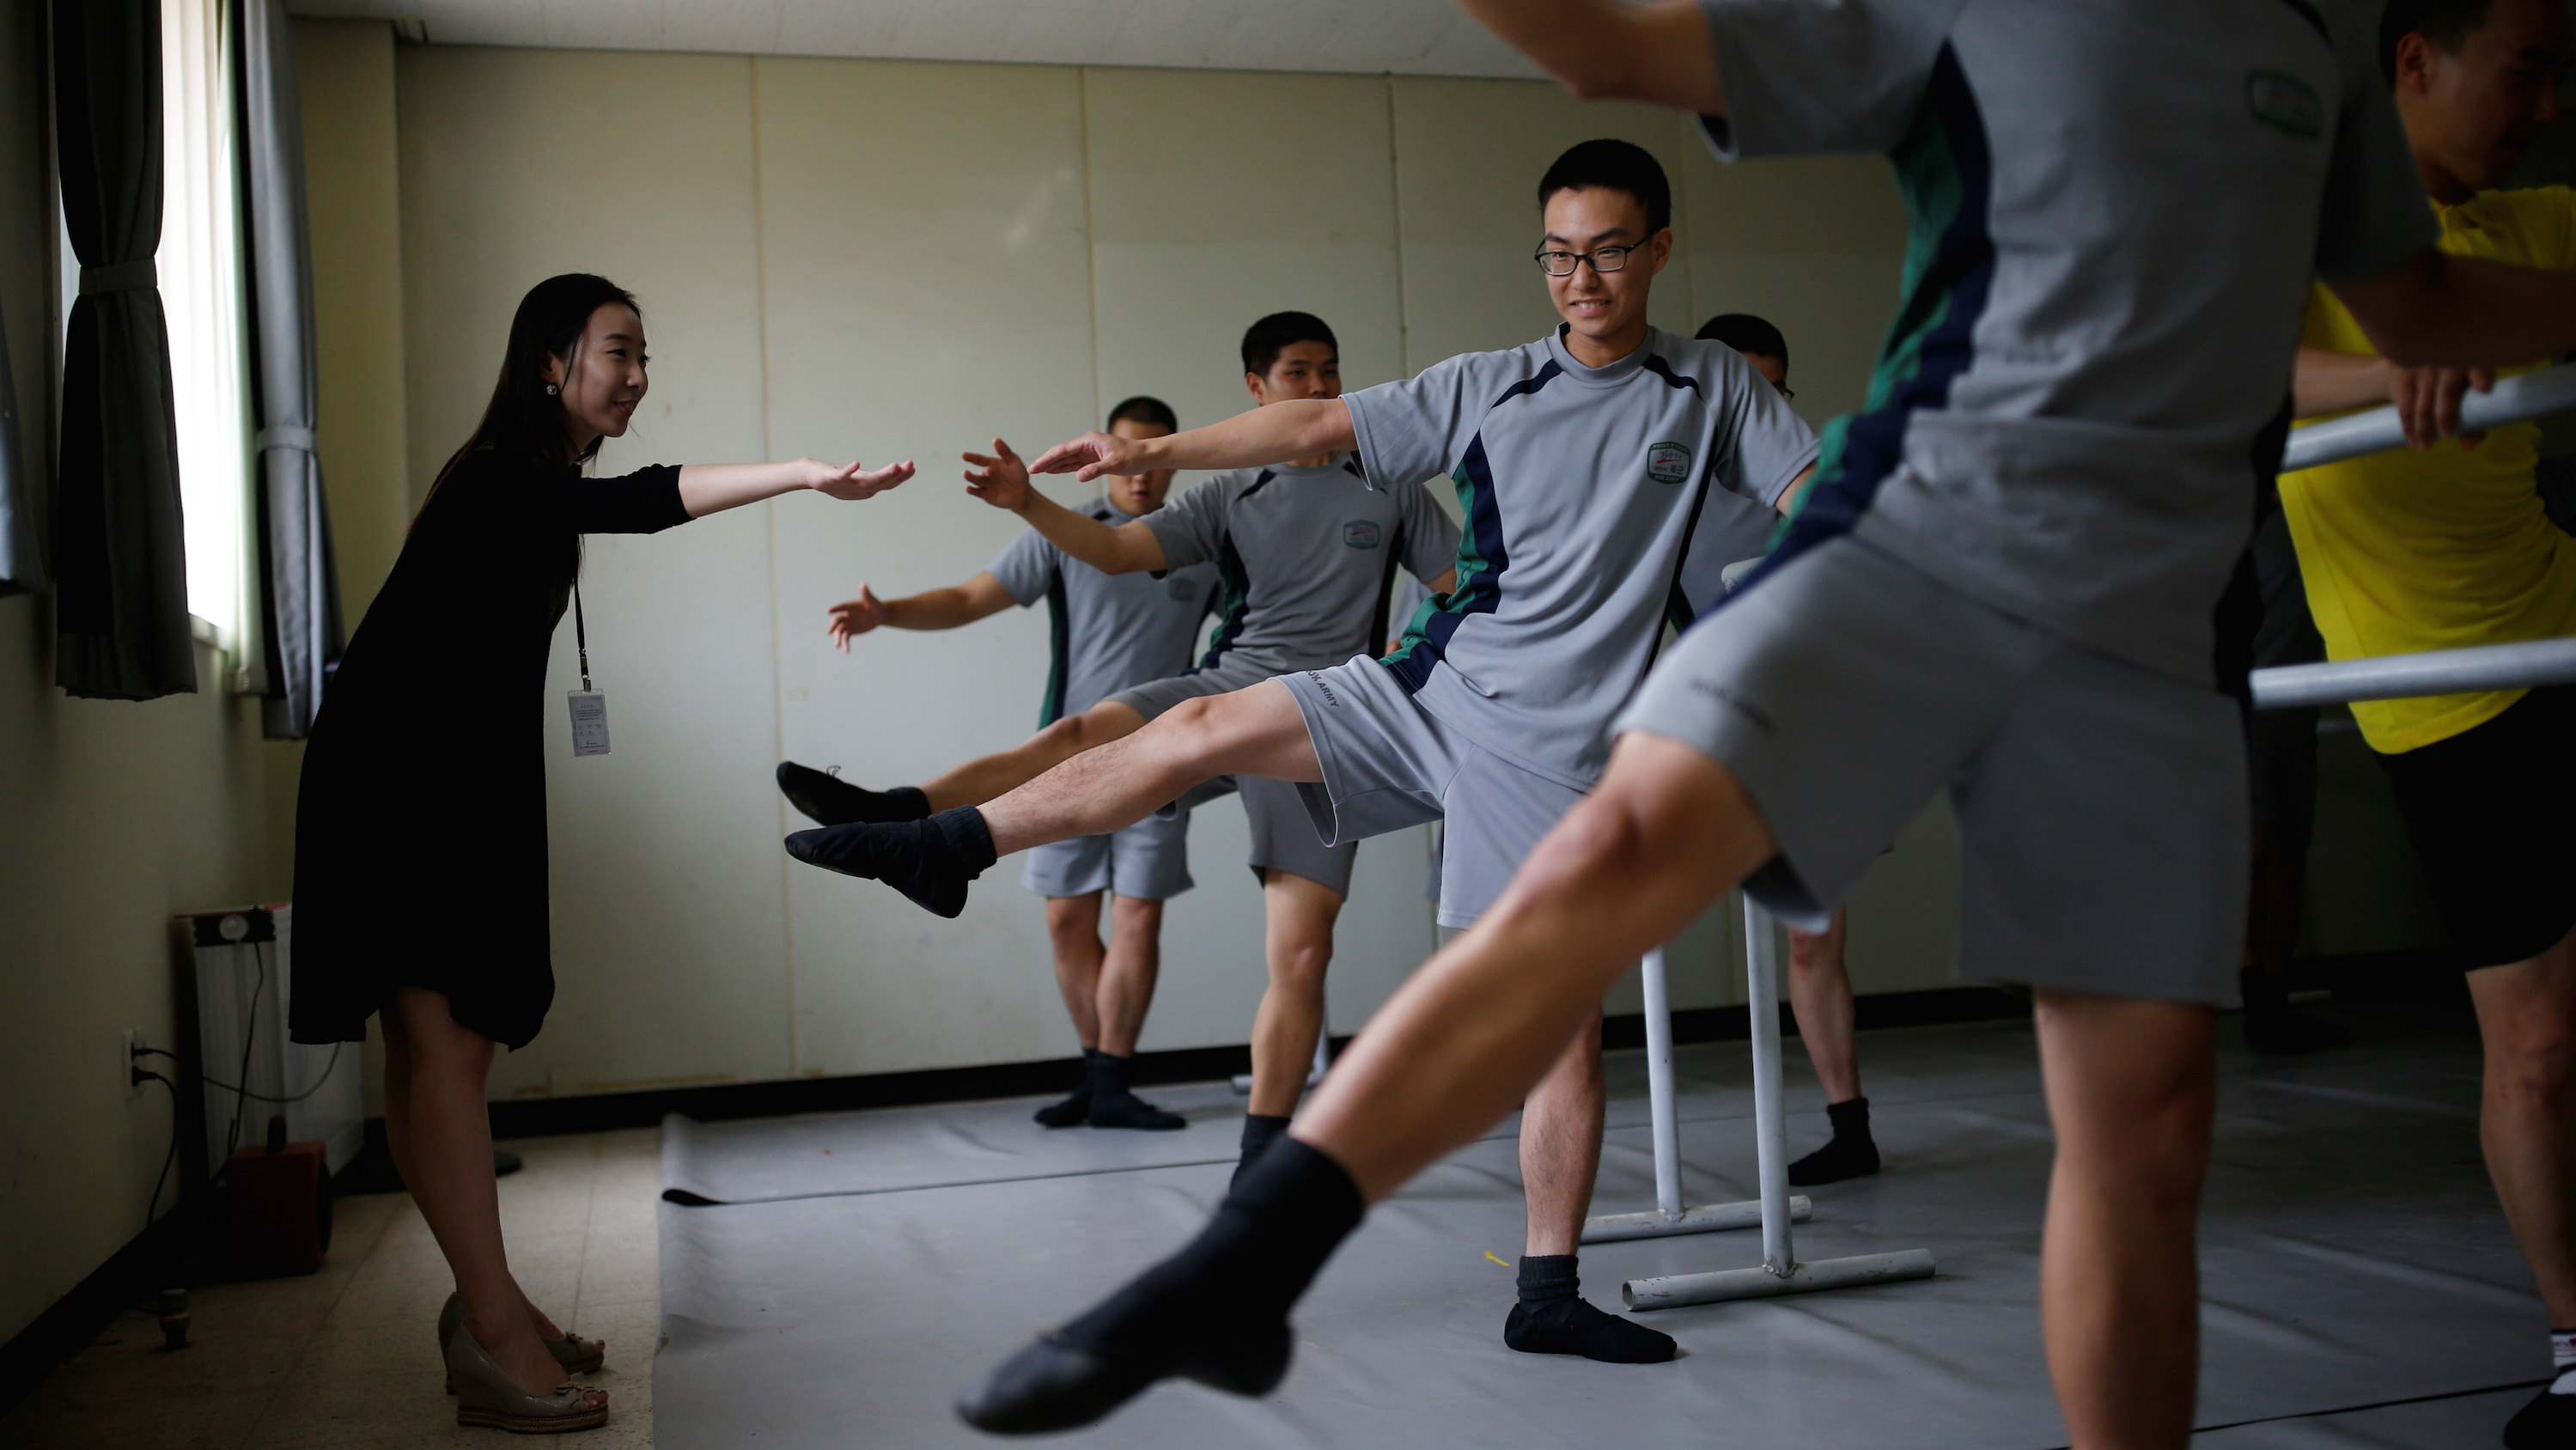 The Wider Image: Ballet classes for soldiers in South Korea